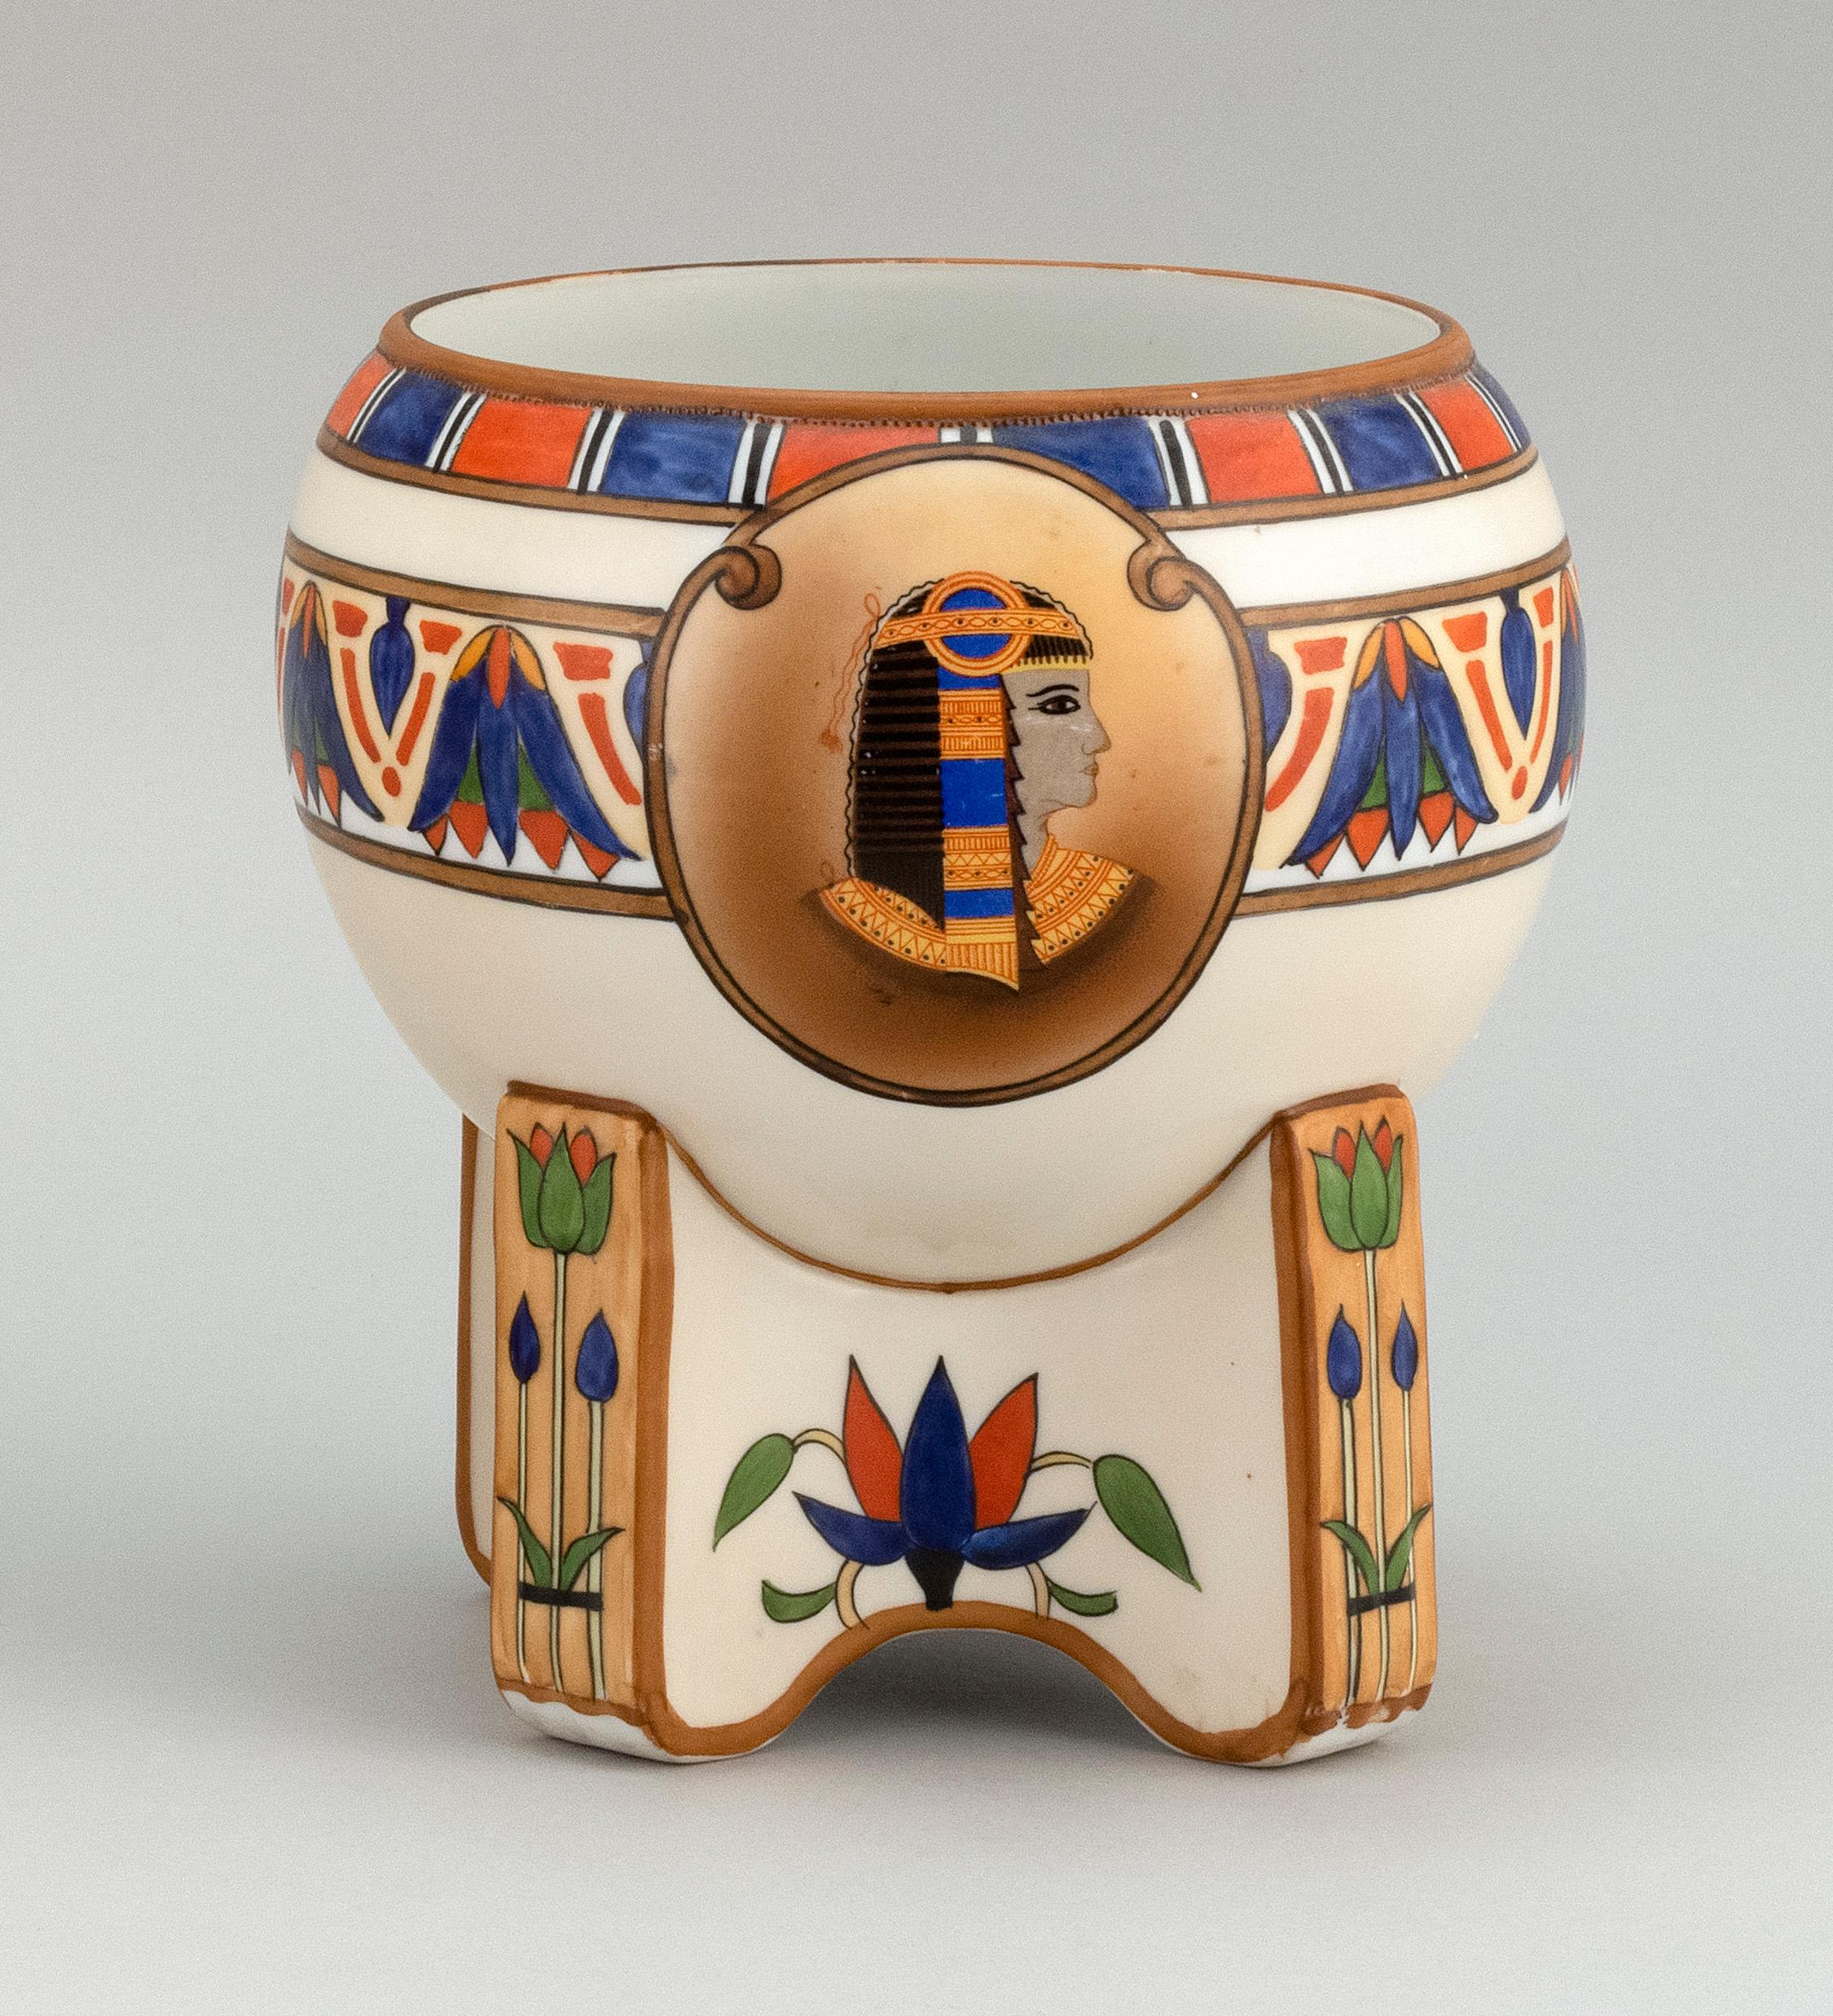 NIPPON PORCELAIN FOOTED BOWL Ovoid, with decoration of Egyptian motifs including two bust portraits of women. Van Patten #47 mark on...